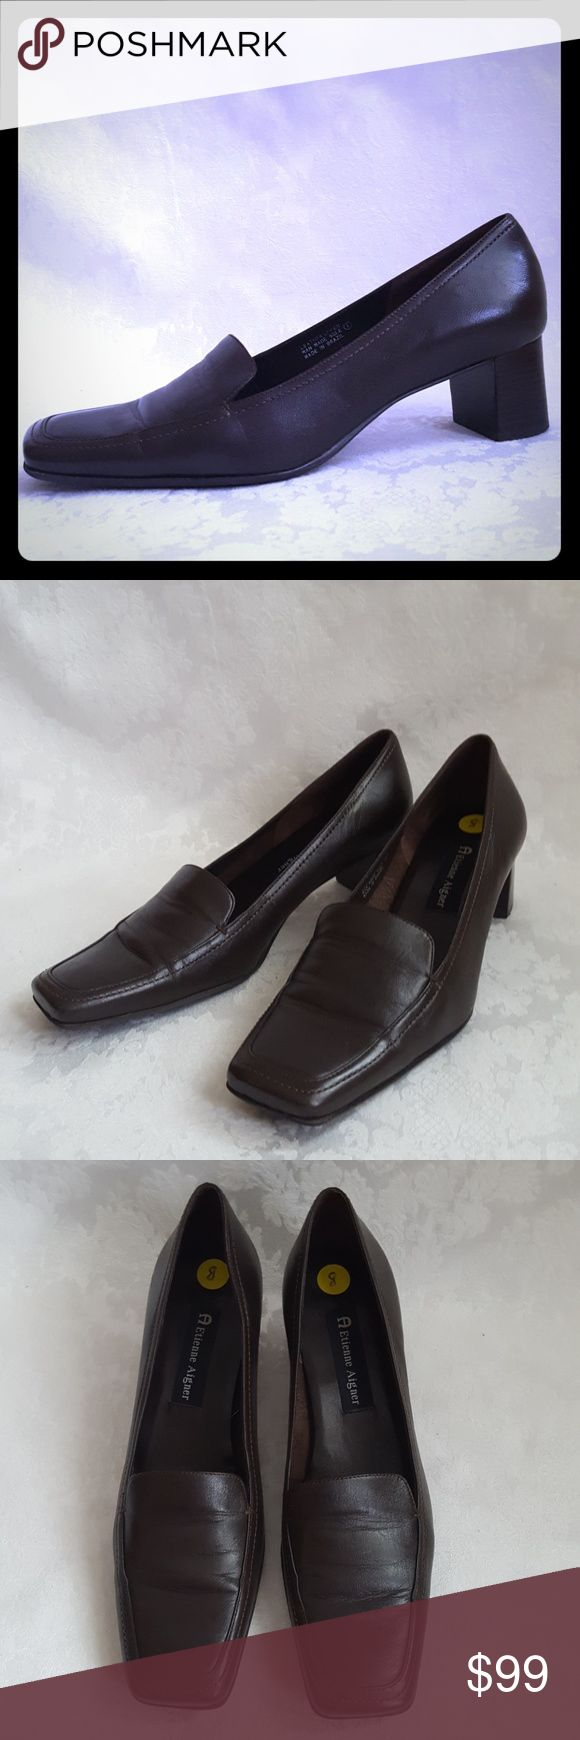 "Etienne Aigner Brown Leather Heels Etienne Aigner rich dark brown leather loafer style heels with 2"" stacked wood heel. Style is ""MIDLAND"". Made in Brazil. See pic 7 for color.  Excellent used condition. Smoke free and pet free home.   Check out my other listings - 100's of 👠shoes👠, 👢boots👢 and 👜bags👜. Bundle 2 or more and save money!💲💰💲 Etienne Aigner Shoes Heels"